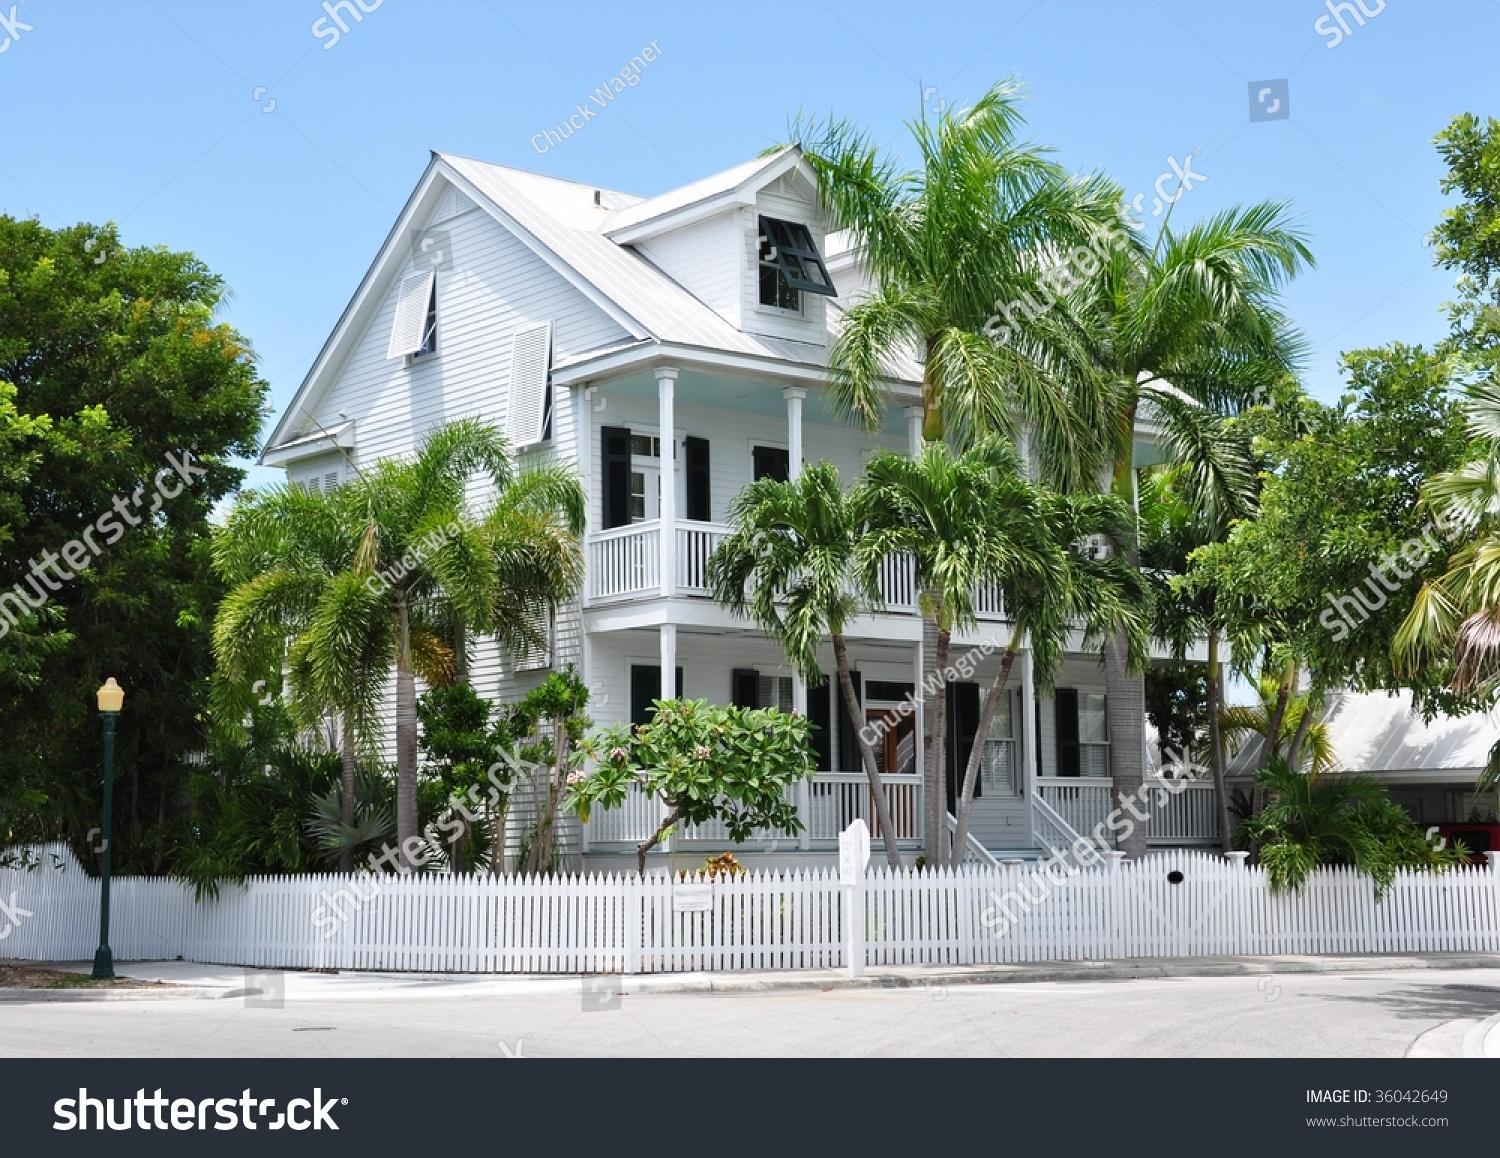 Key west style architecture stock photo 36042649 for Key west architecture style